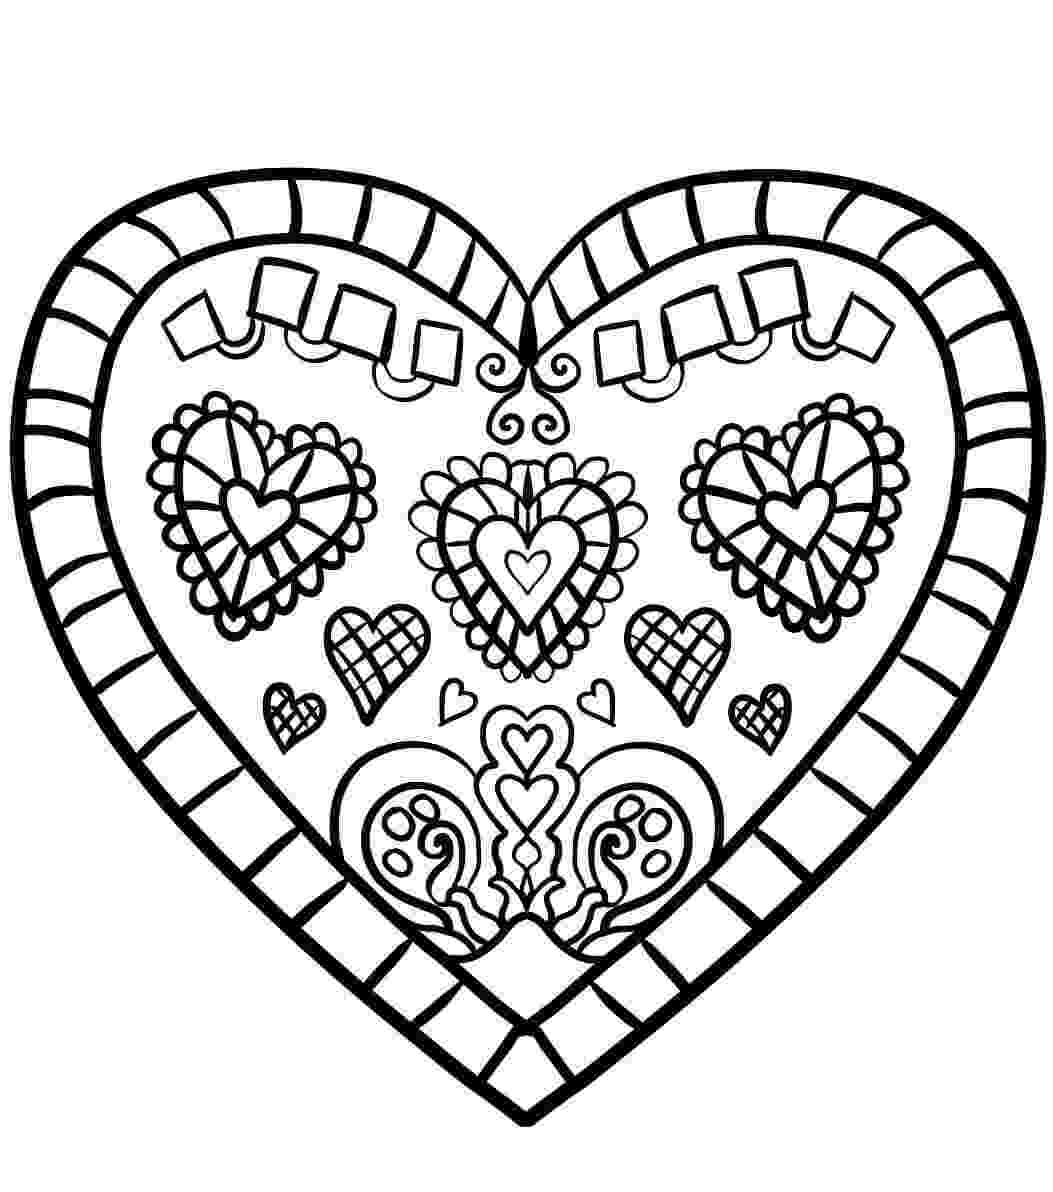 heart coloring page 35 free printable heart coloring pages page coloring heart